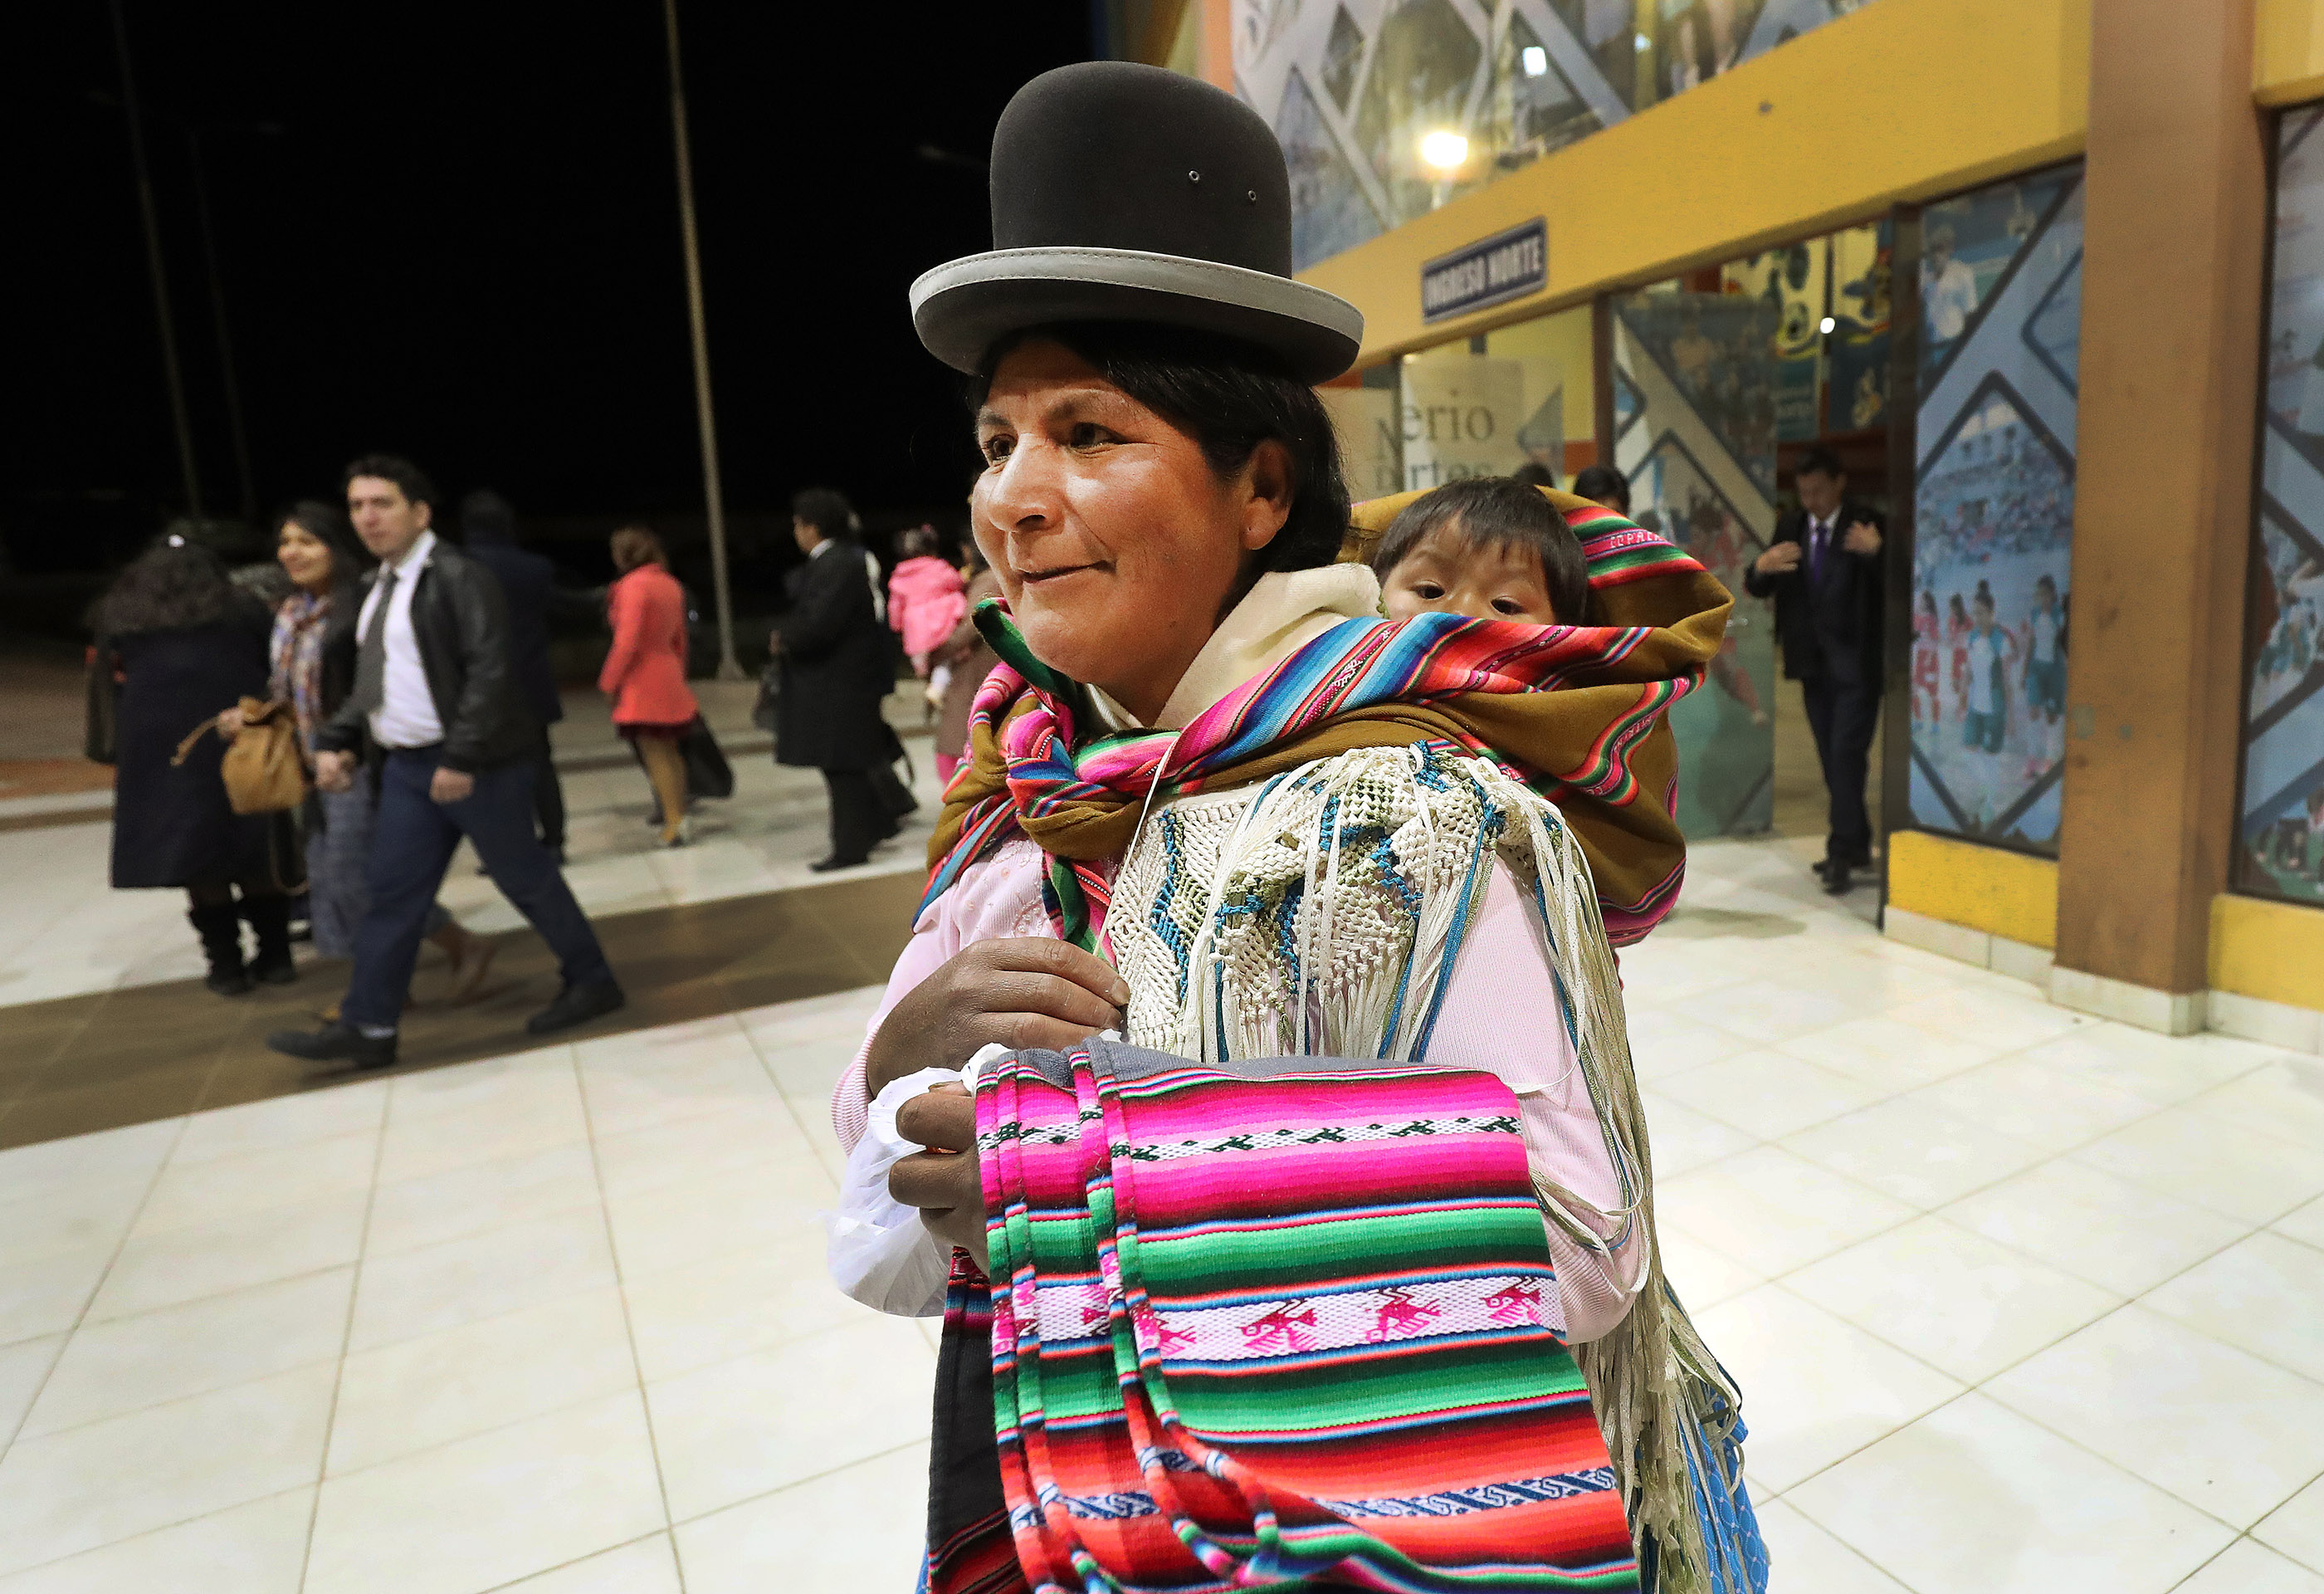 A woman wearing traditional clothing carries her child after hearing President Russell M. Nelson of The Church of Jesus Christ of Latter-day Saints speak in La Paz, Bolivia on Oct. 21, 2018.